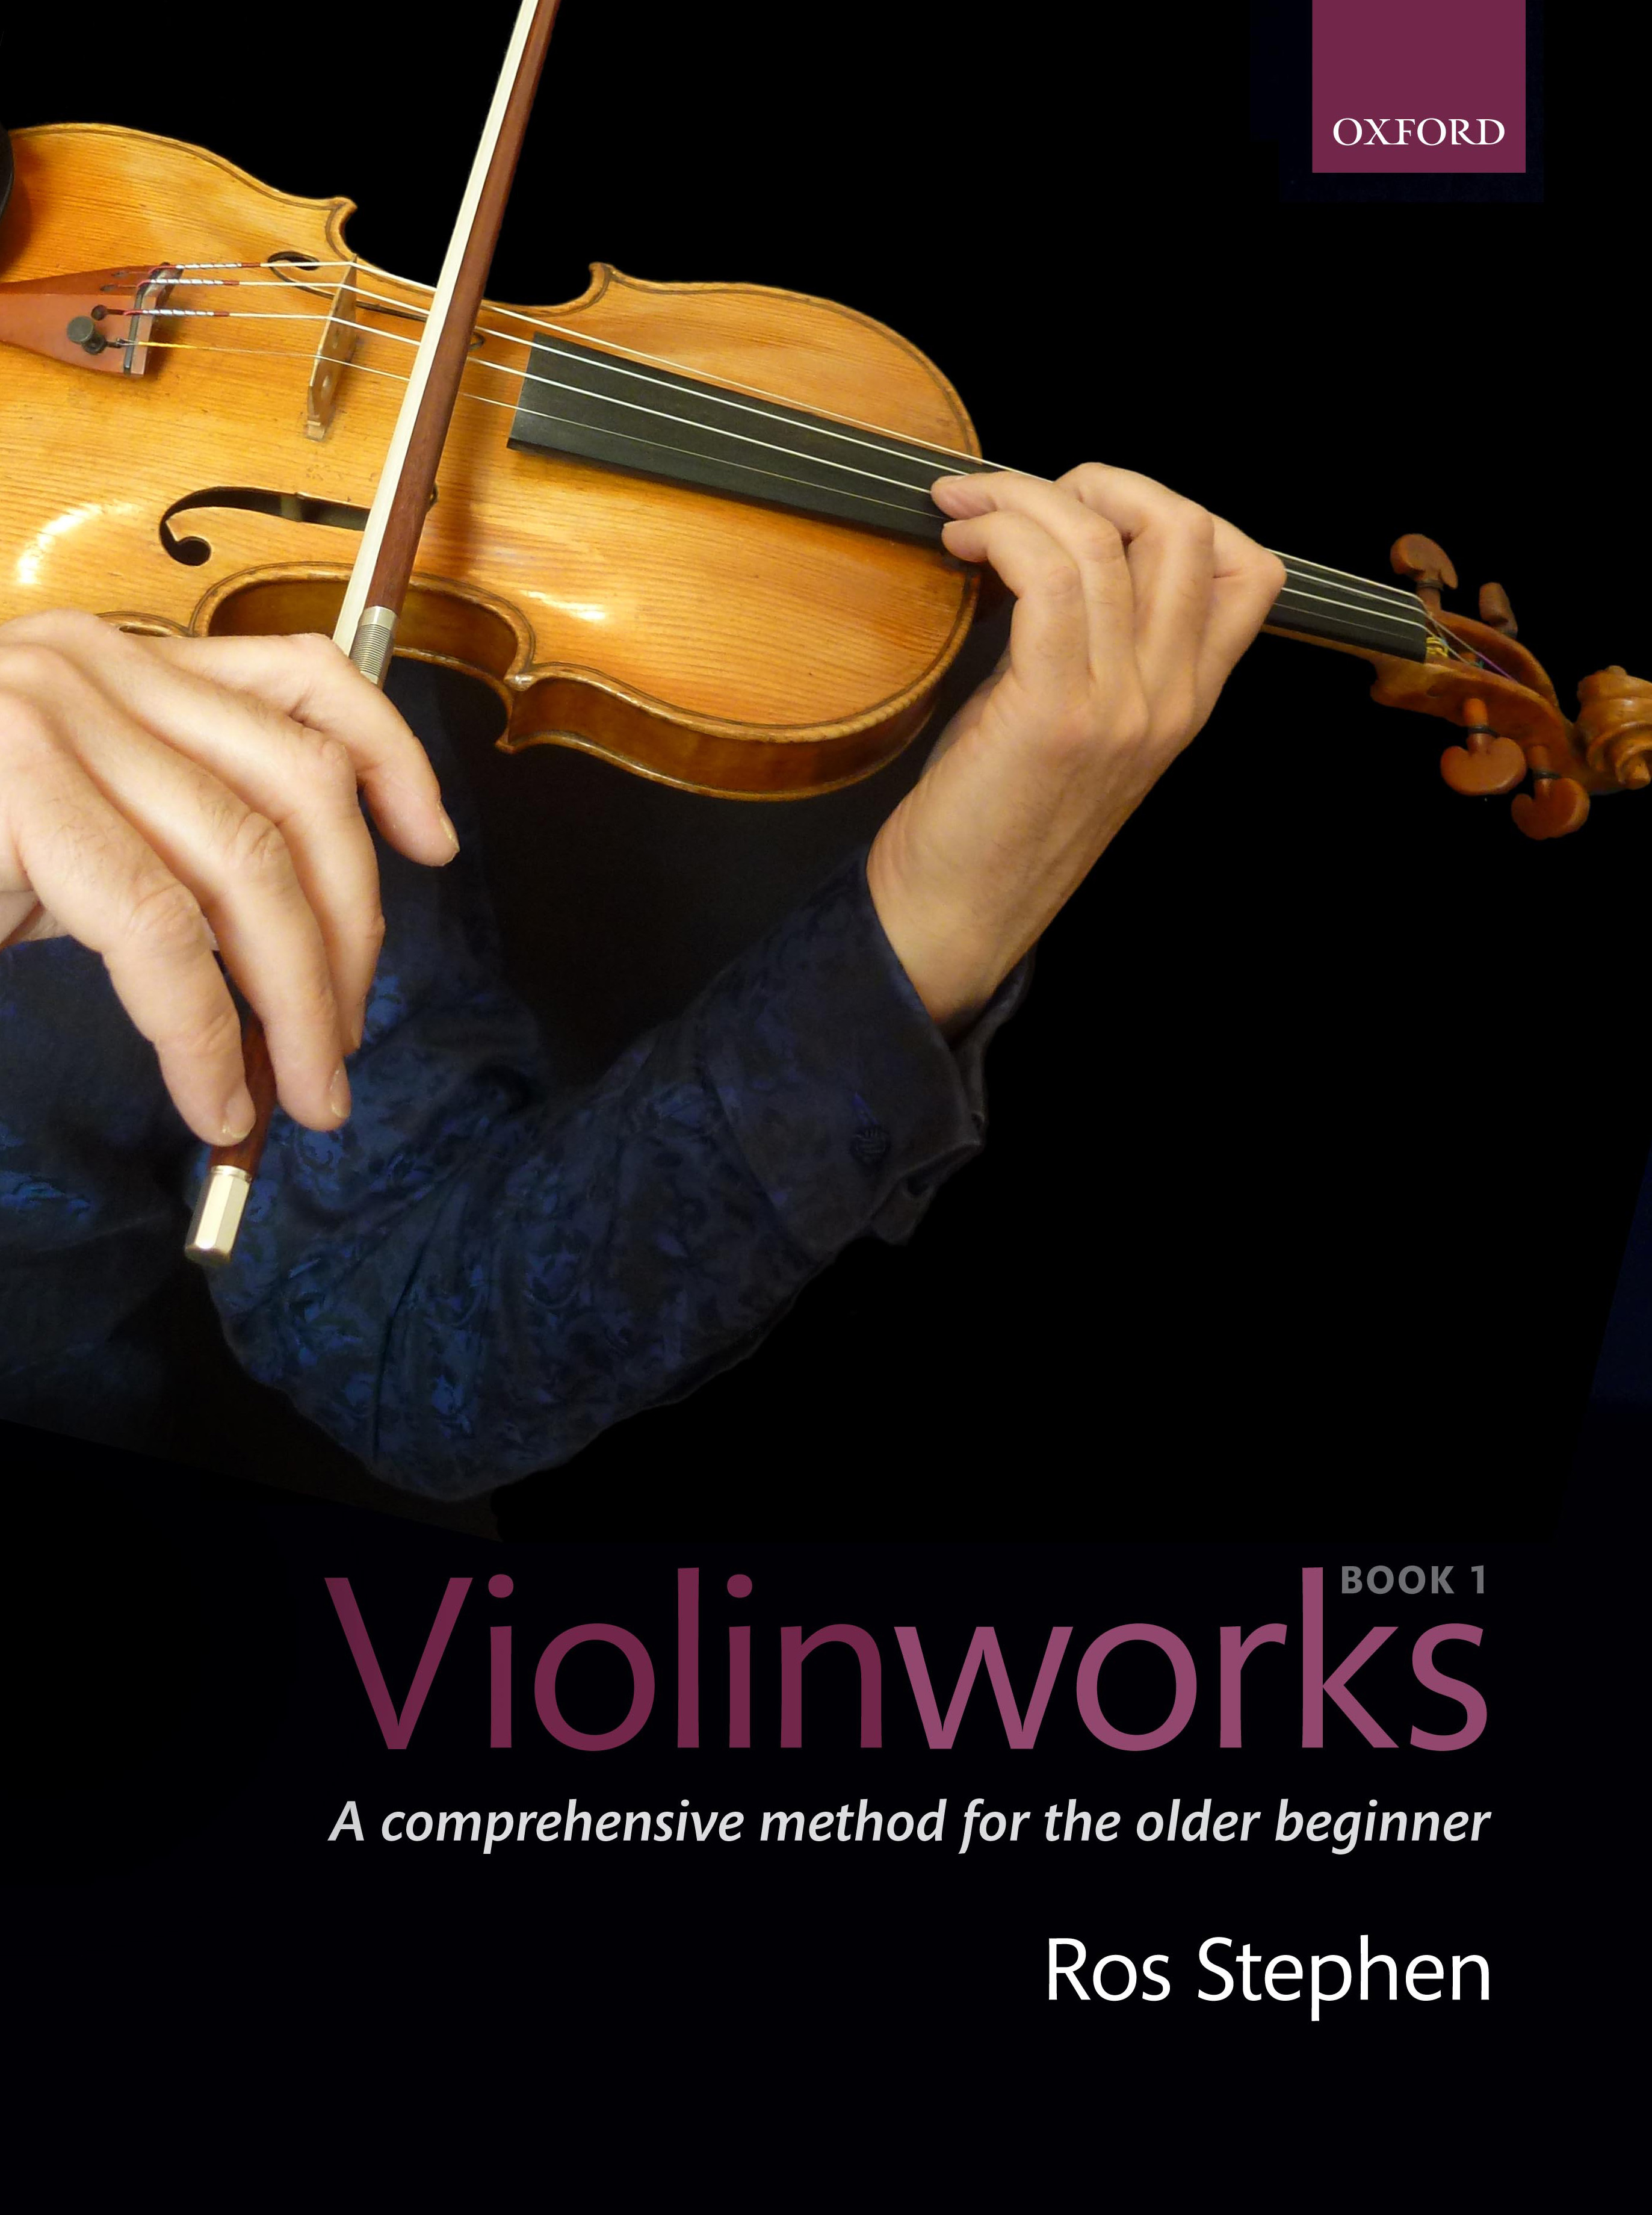 Order Violinworks direct from Oxford University Press